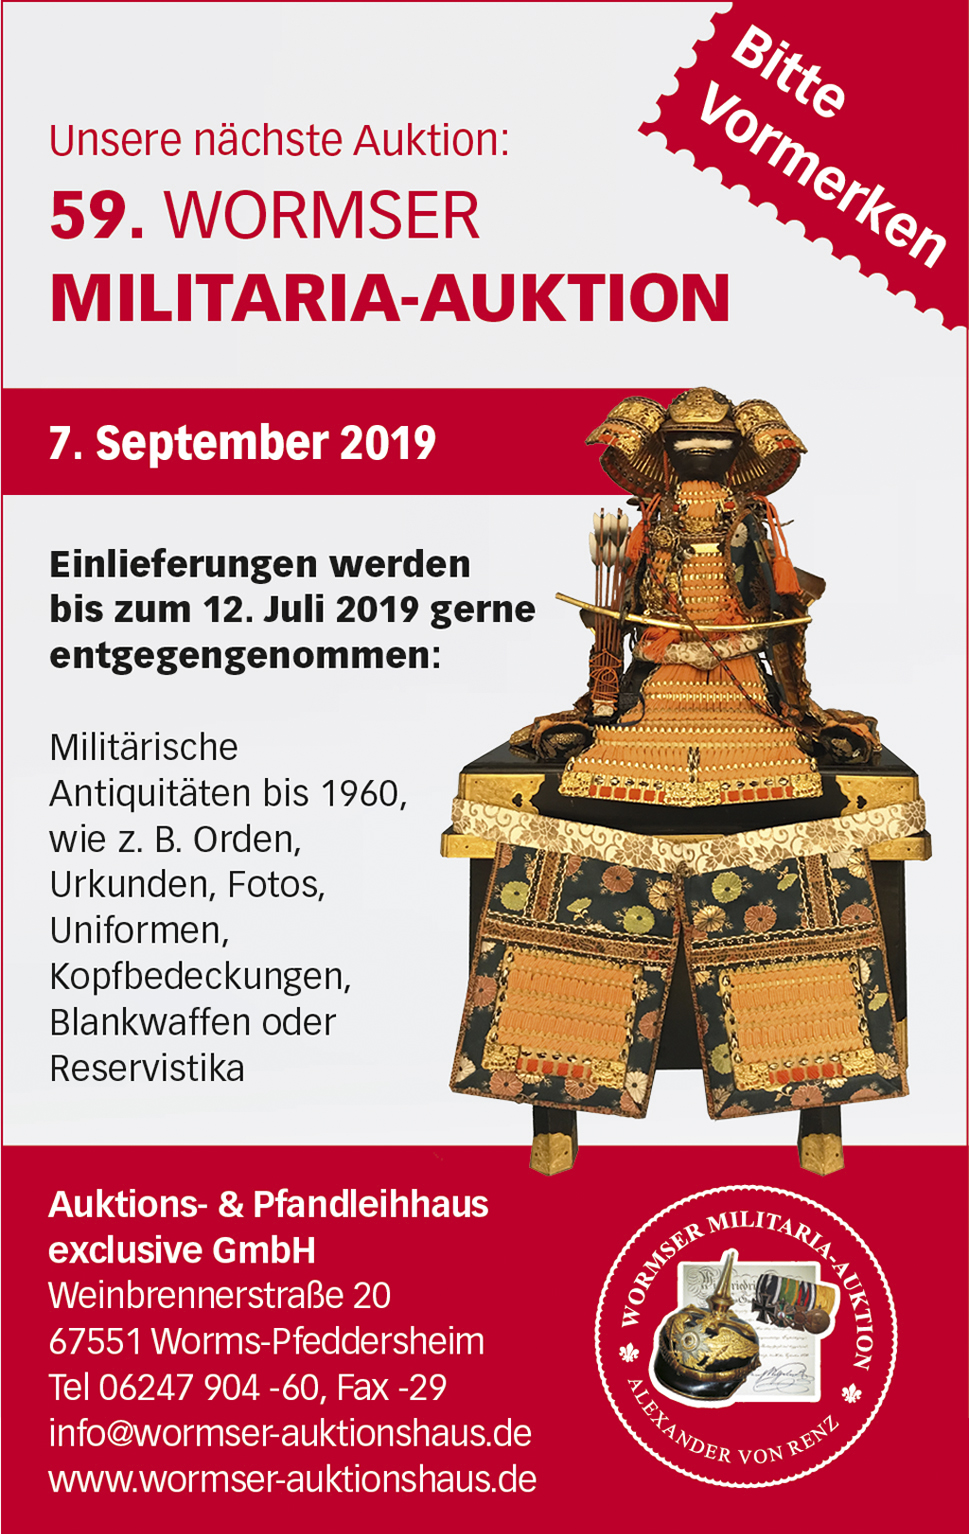 59. Wormser Militaria-Auktion findet am 7. September 2019 statt